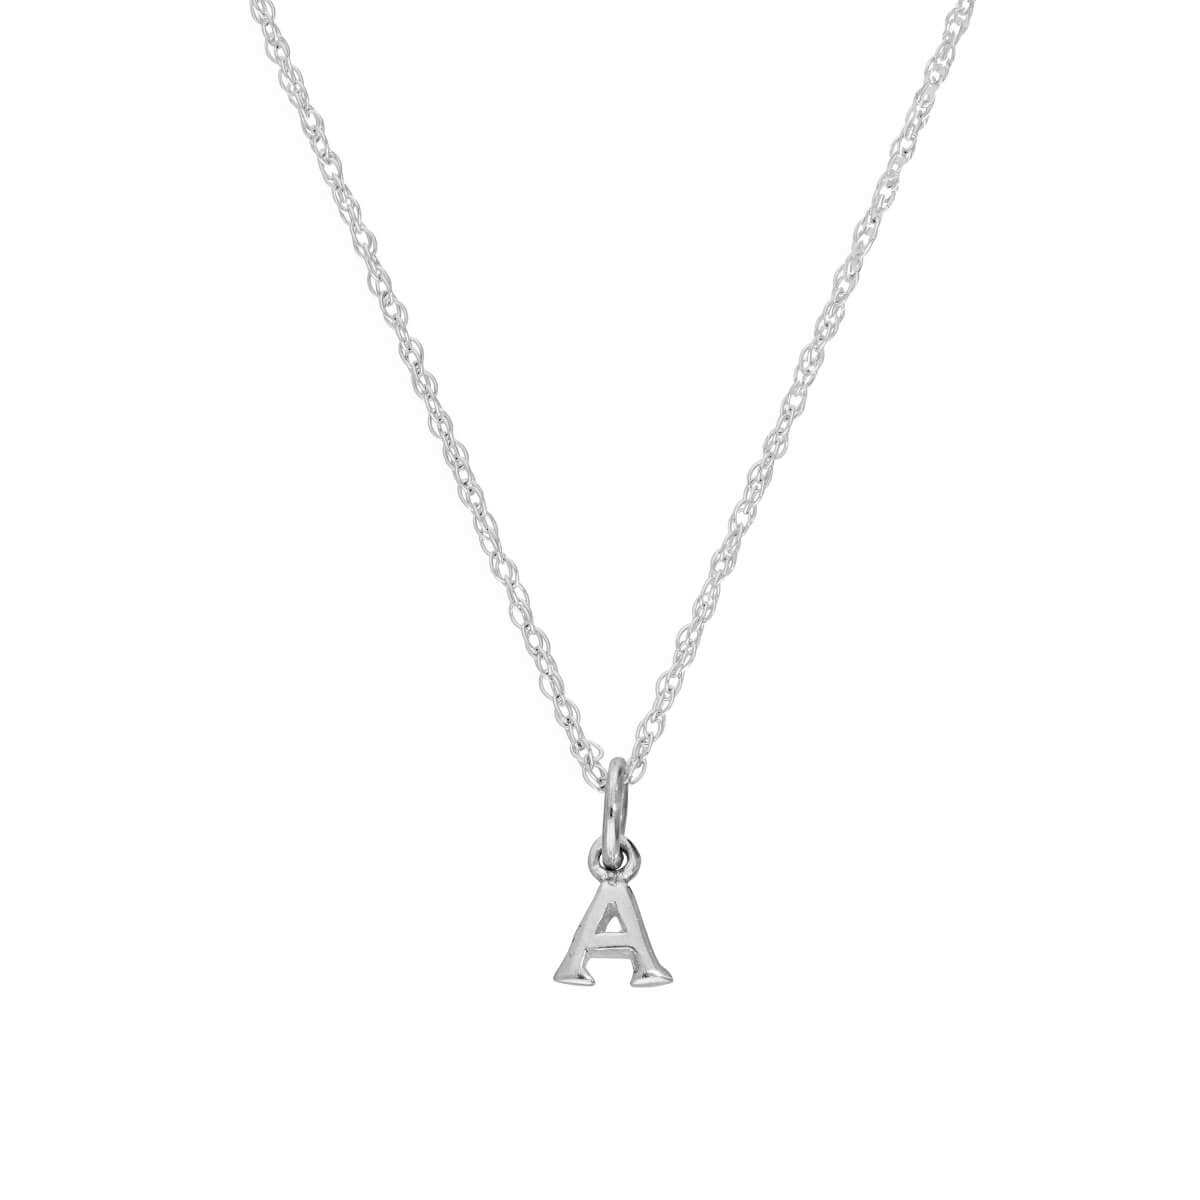 Tiny Sterling Silver Alphabet Letter A Pendant Necklace 14 - 22 Inches